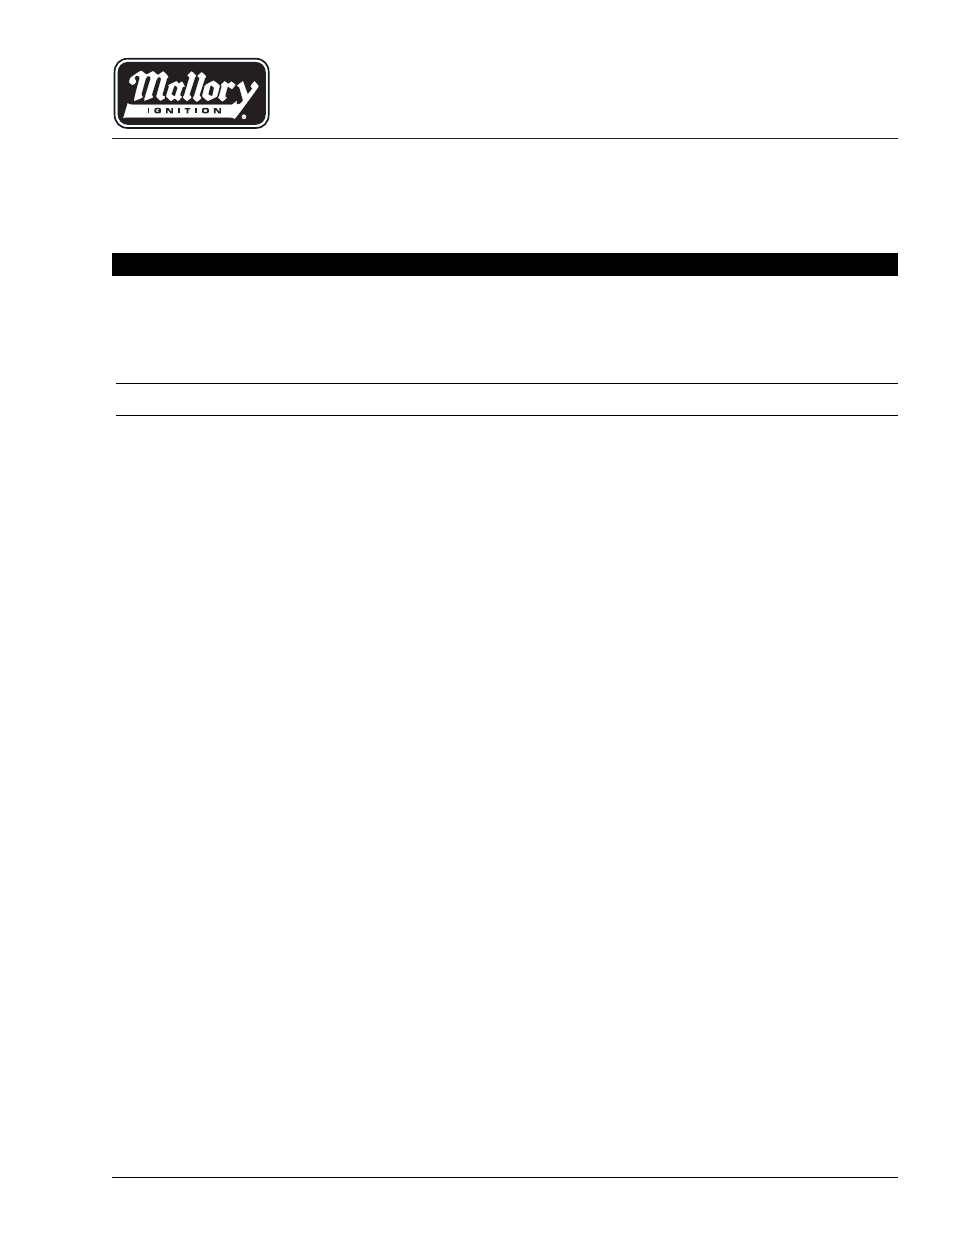 Mallory Unilite Wiring Diagram Pics P 9000 Ignition Distributor User Manual 13 Pages